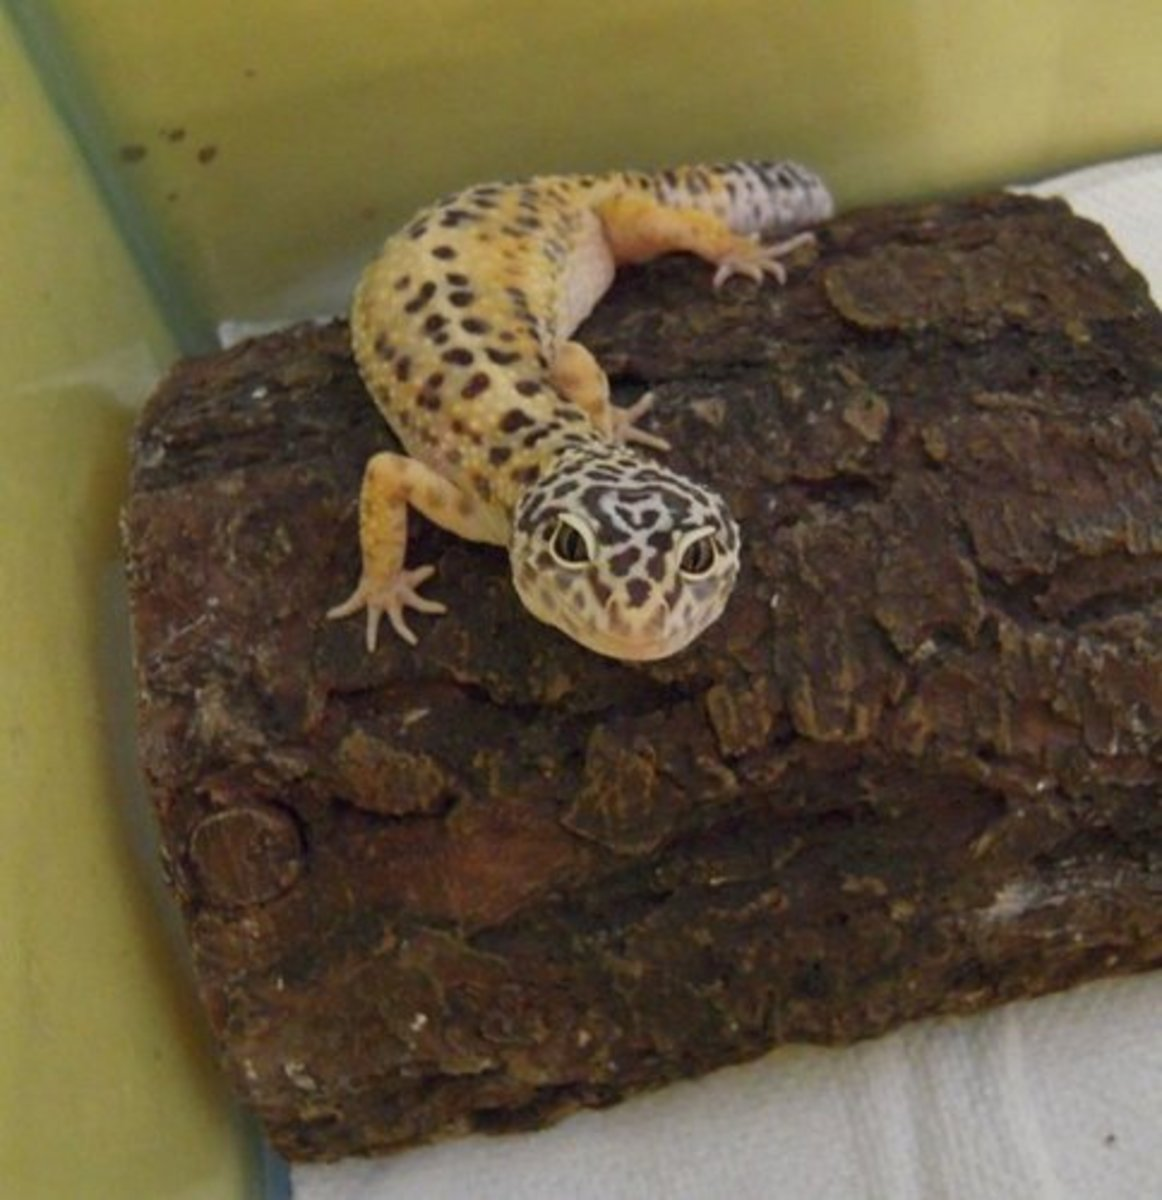 Leopard Geckos can do very well in plastic tub housing if assembled properly.